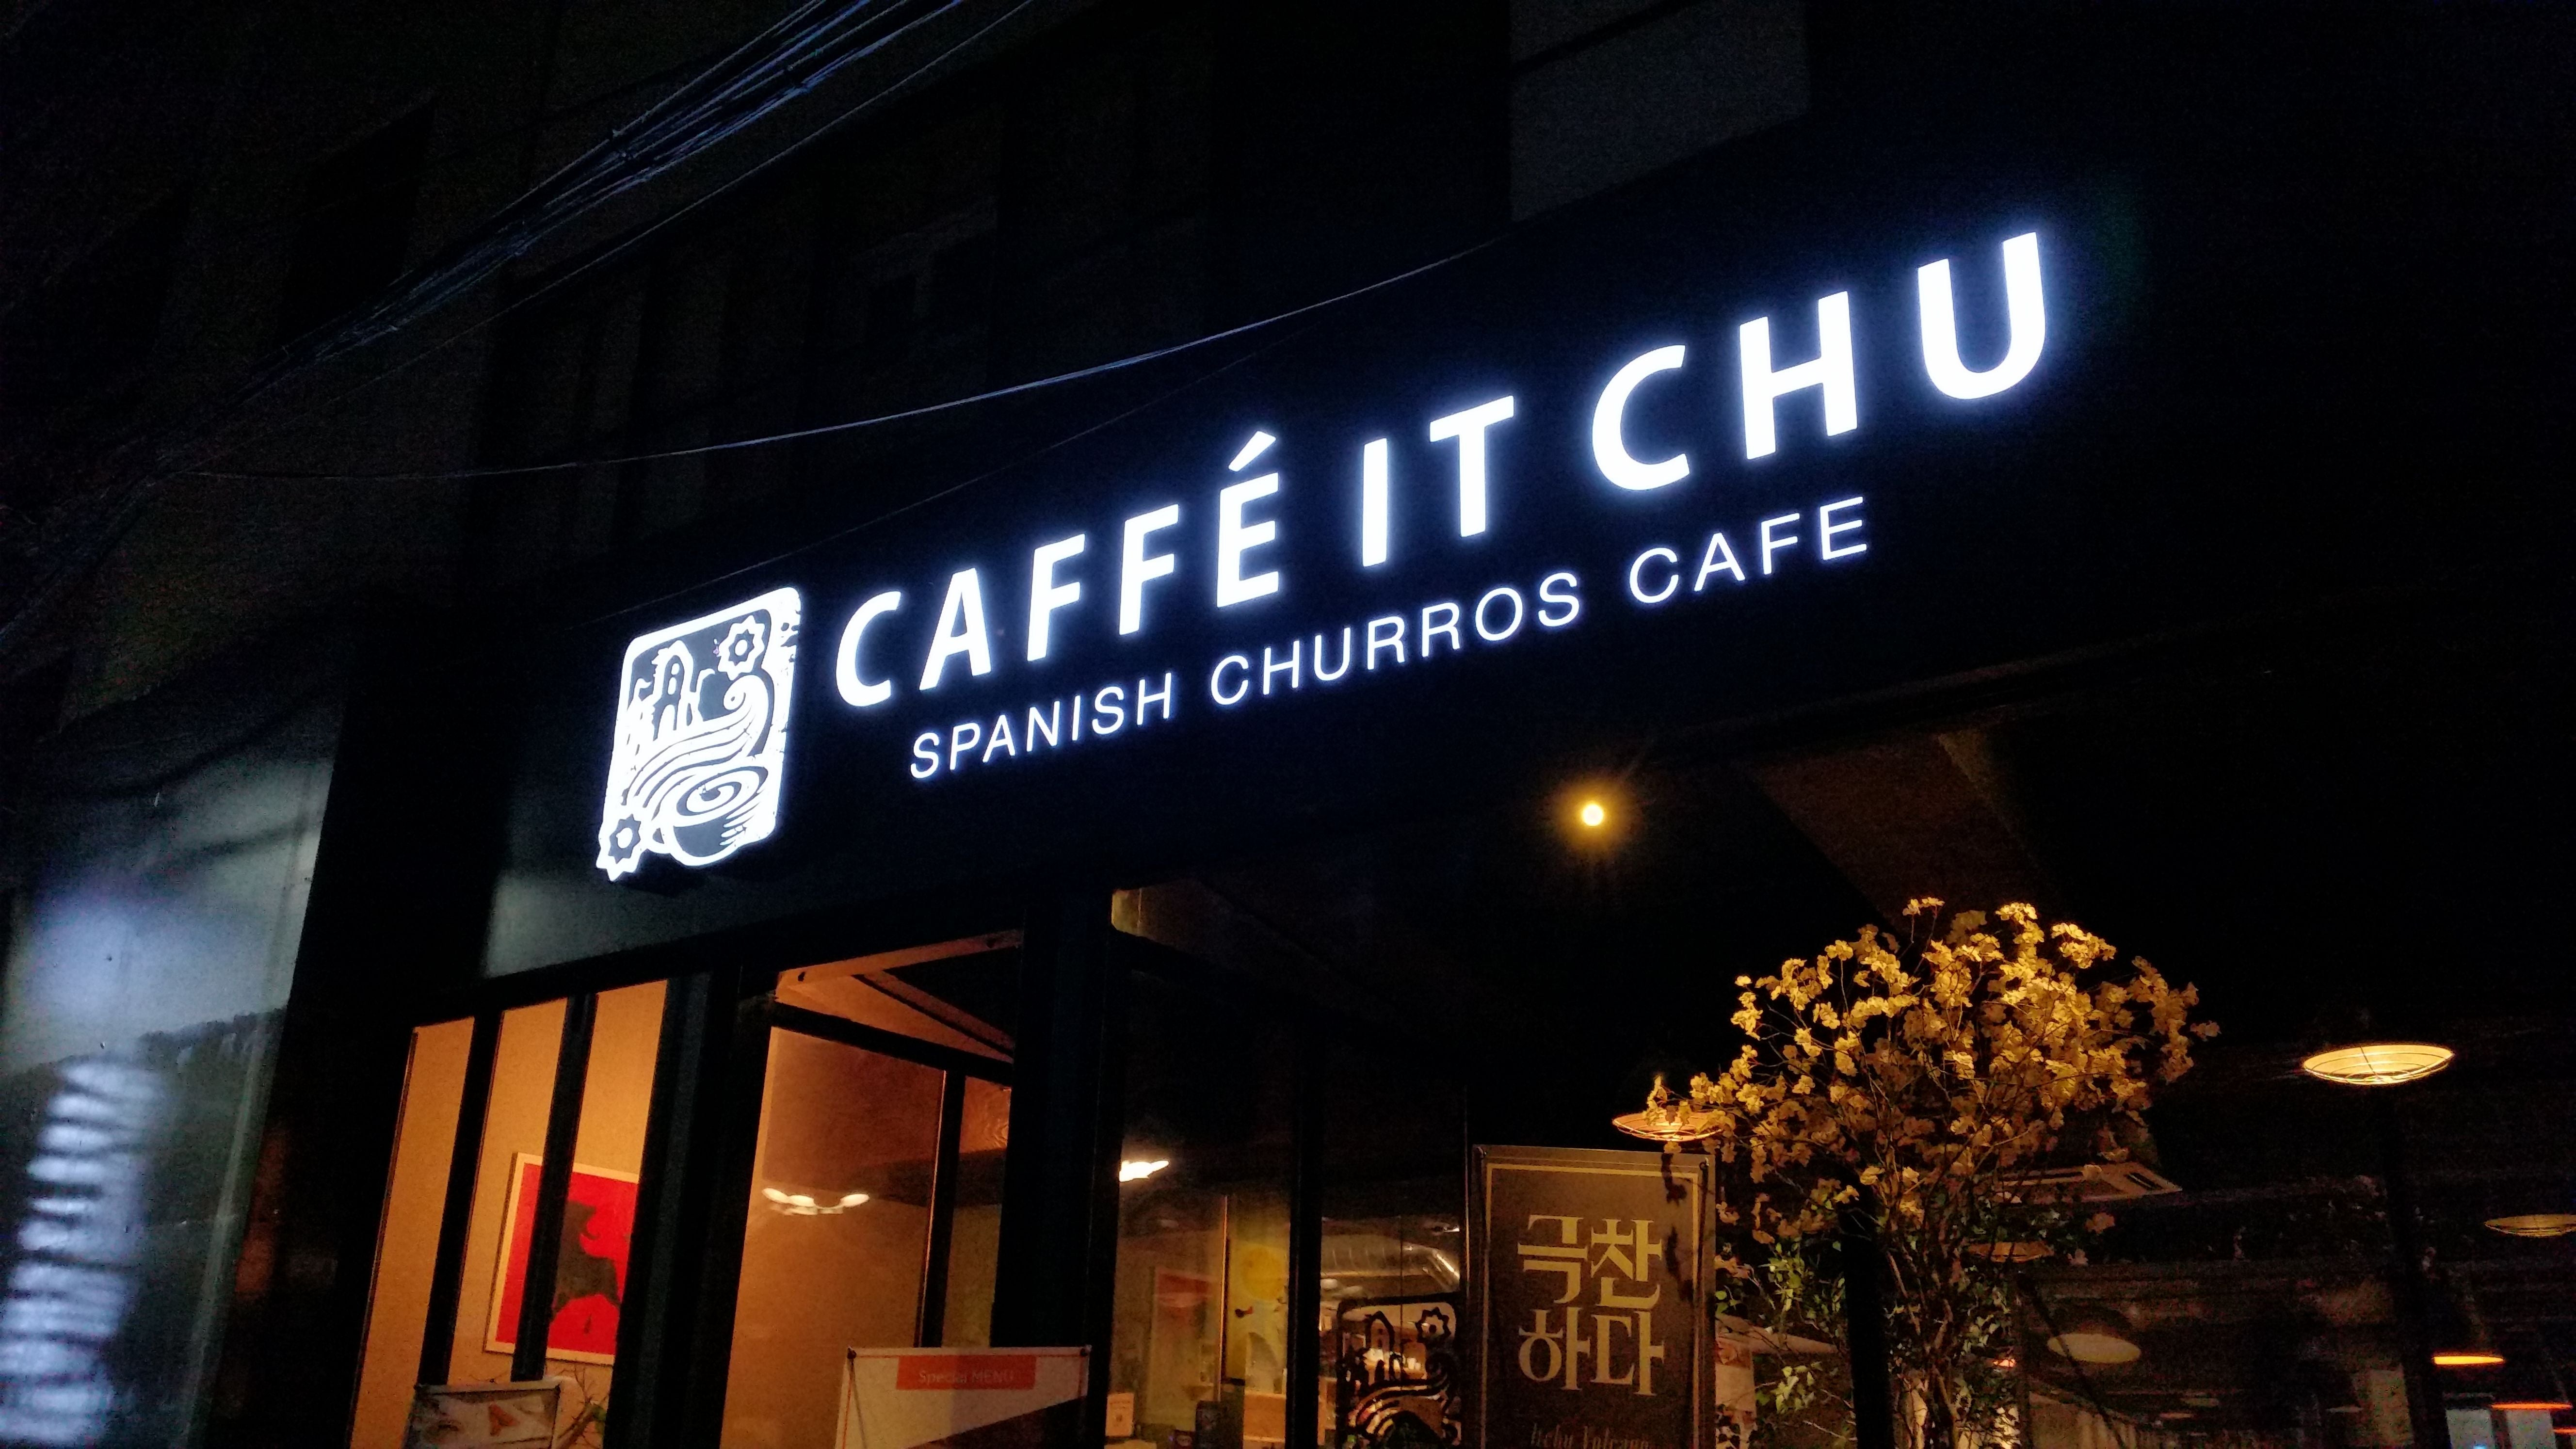 Caffe It Chu